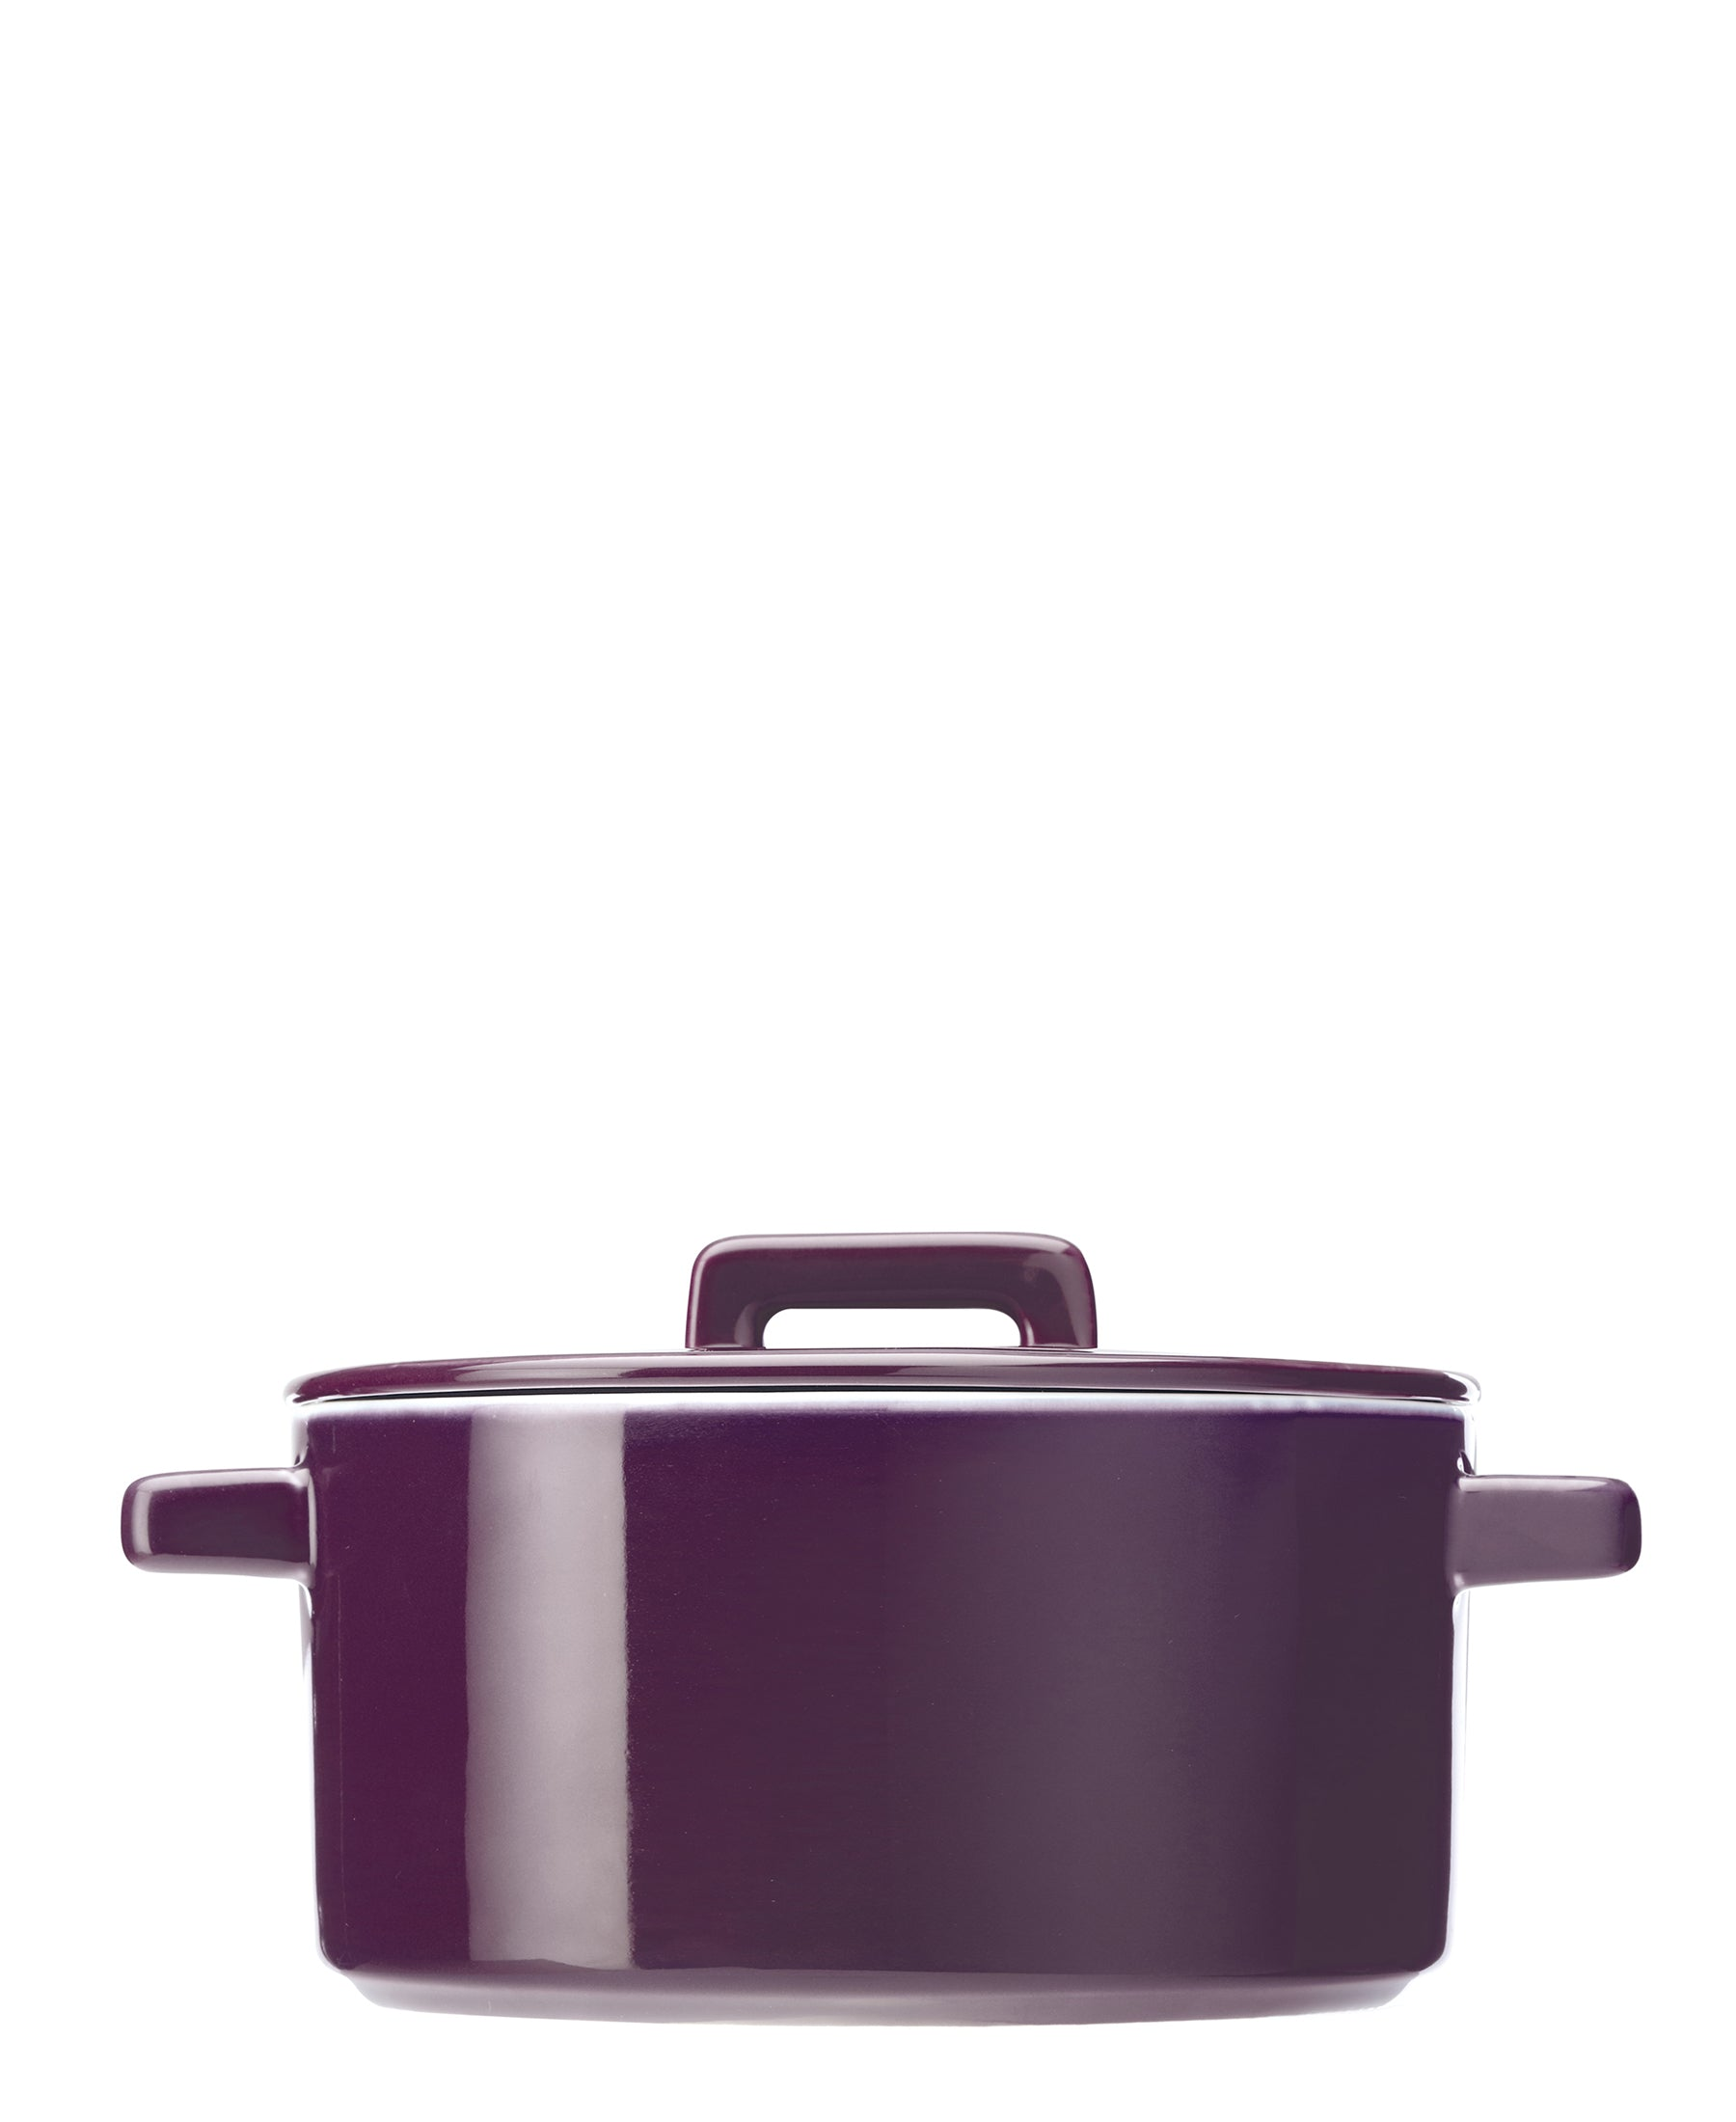 Maxwell & Williams Epicurious Aubergine Round Casserole with Lid 2.6L